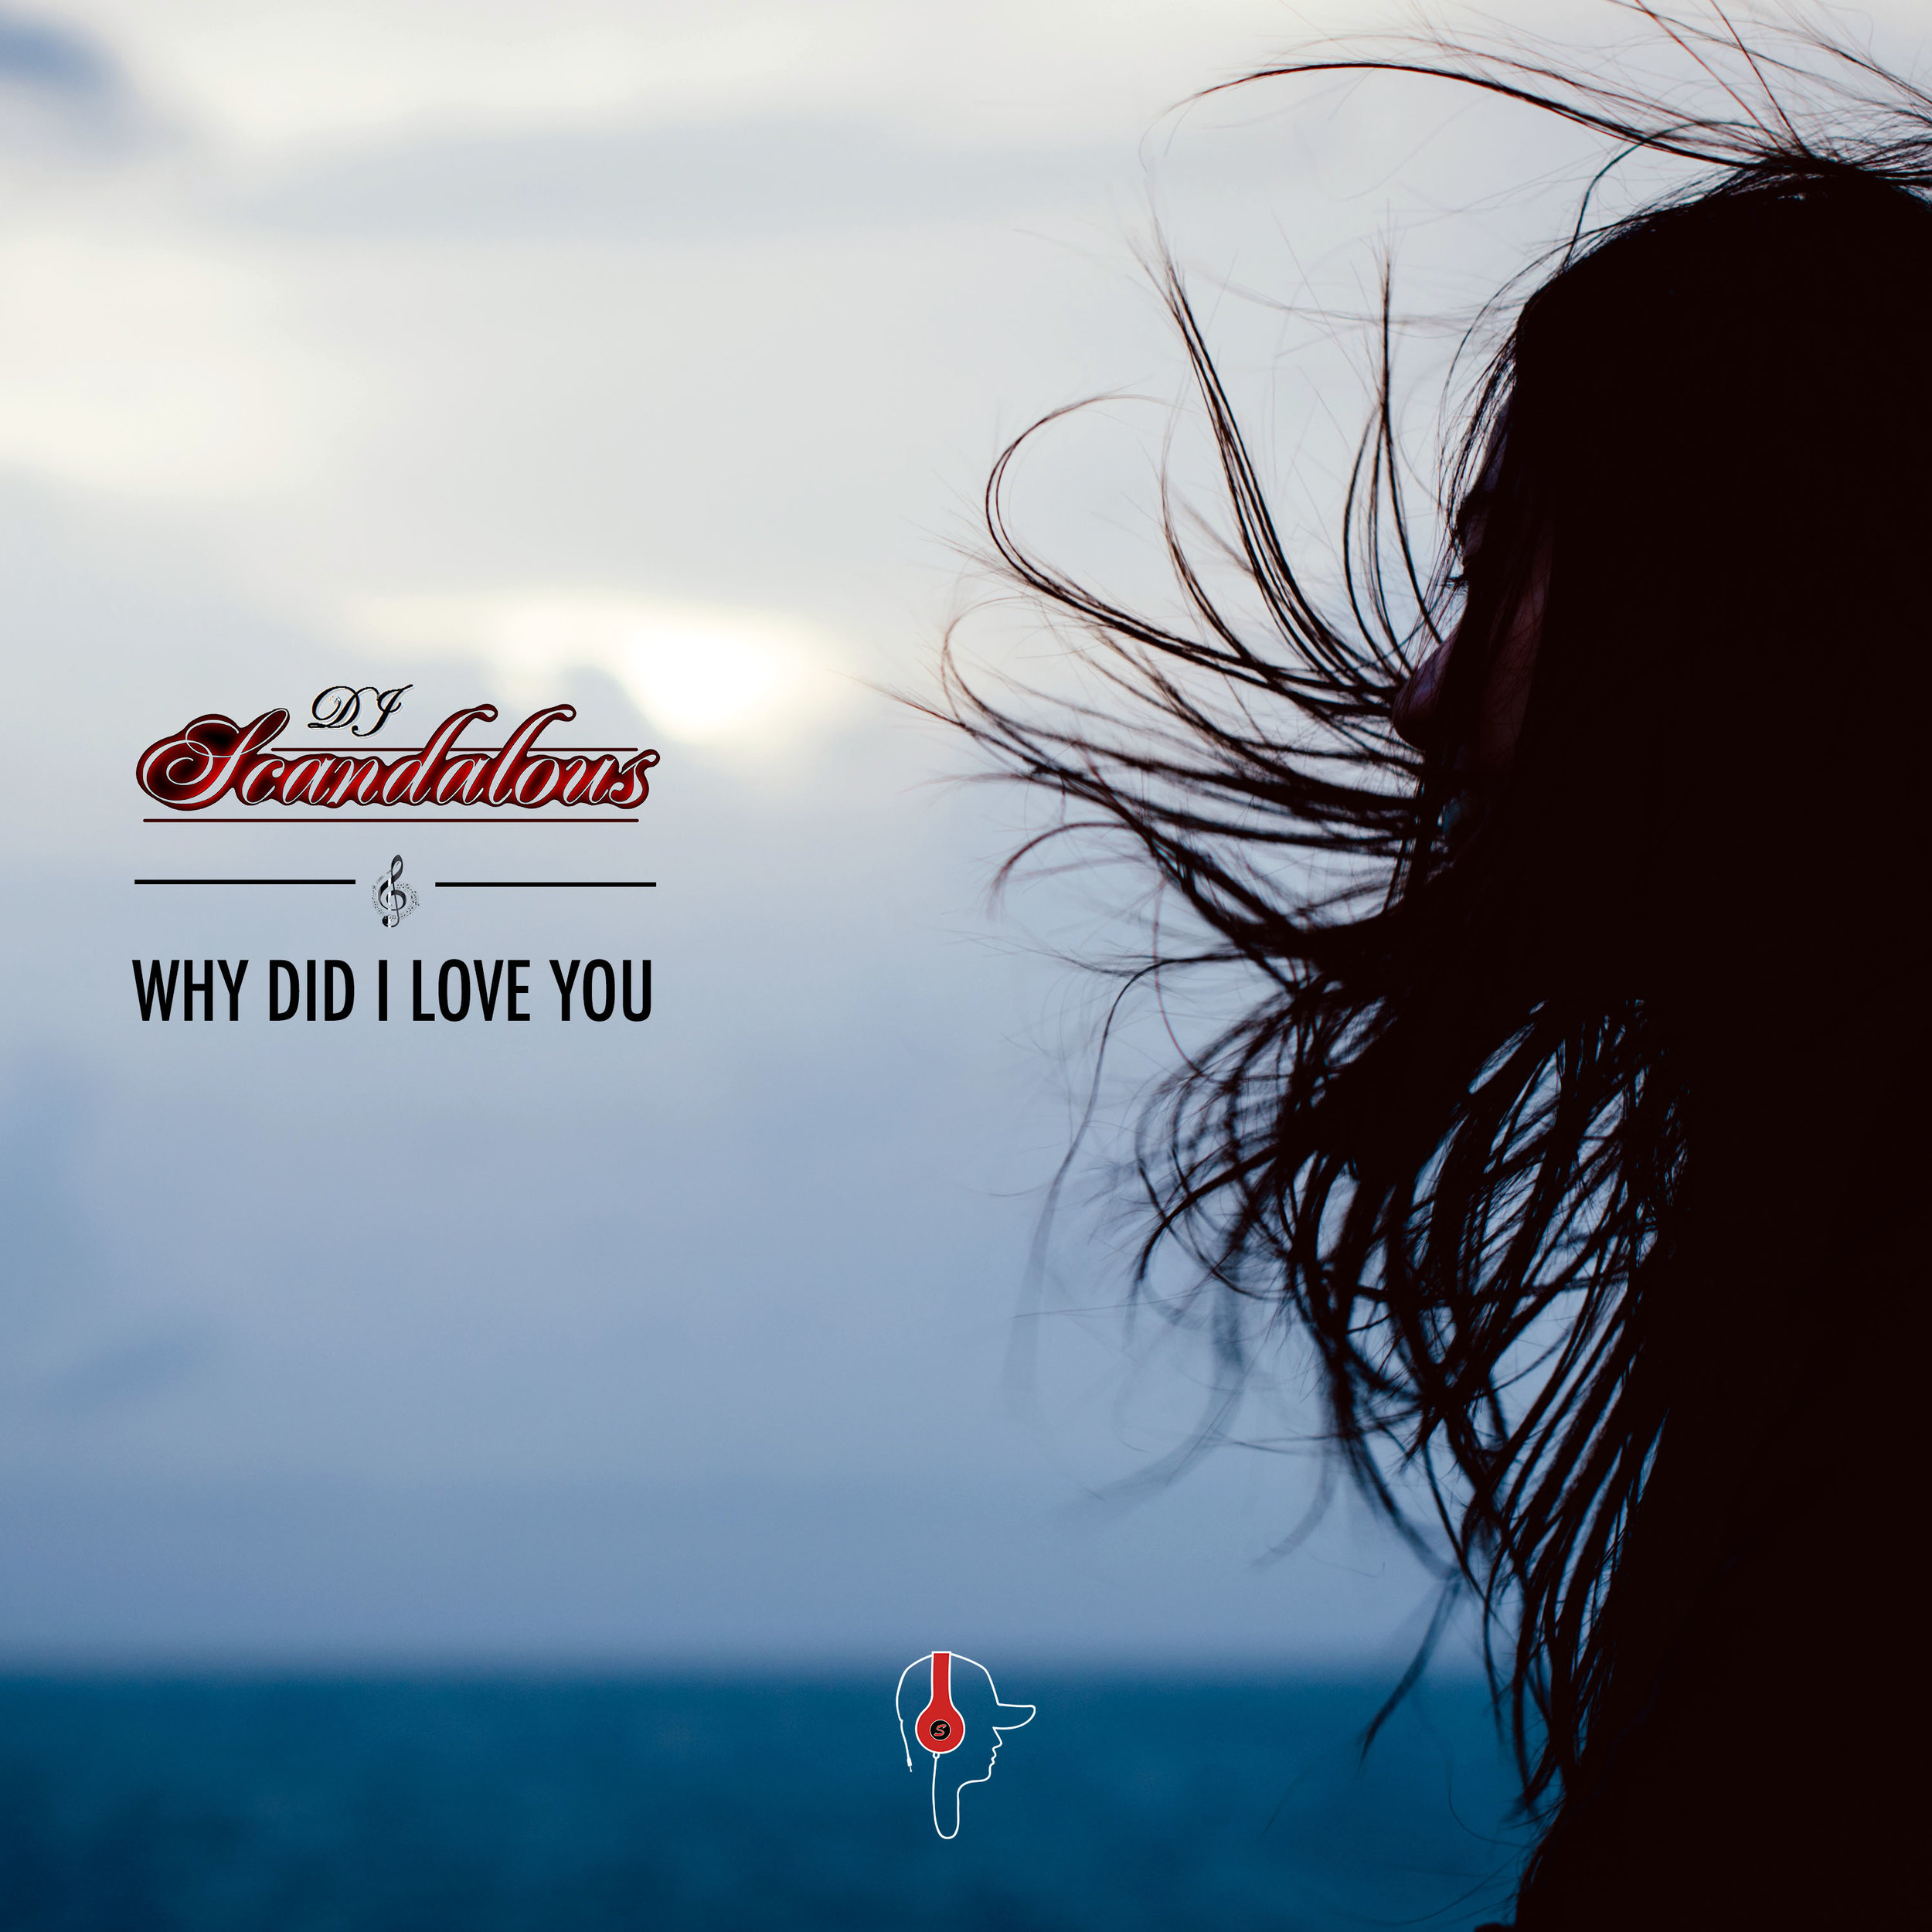 """Why Did I Love You"" (2017) - This single was released in July 14, 2017. The song was written after DJ Scandalous broke up with his ex-girlfriend. It was produced by DJ Scandalous and EDM Producer Austin Leeds."